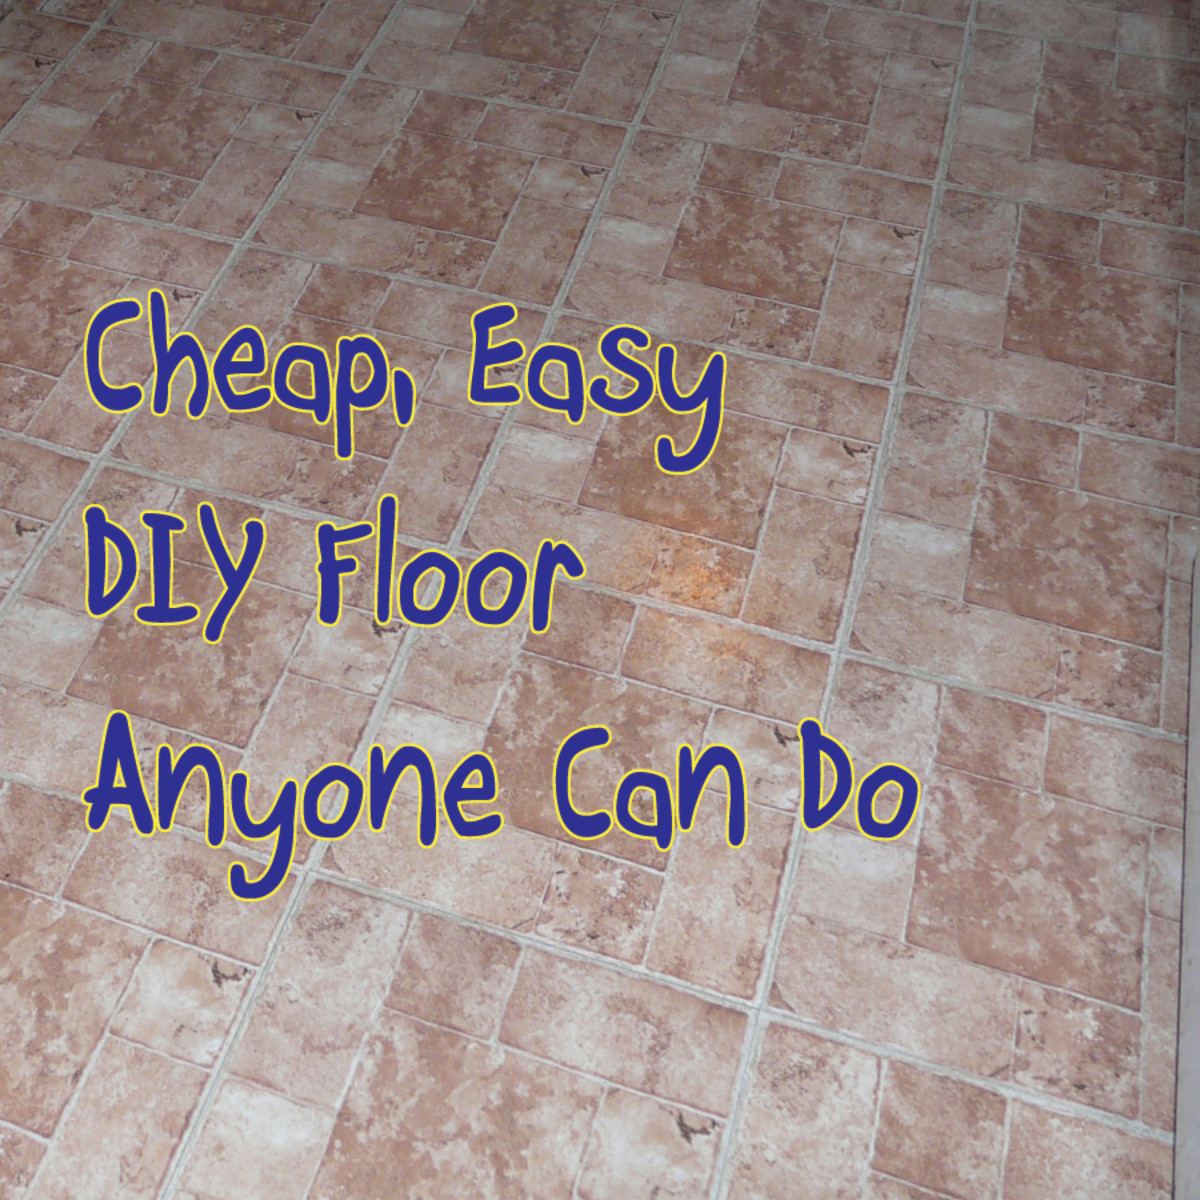 How To Lay PeelandStick Vinyl Tile Flooring Dengarden - What do you need for tile floor